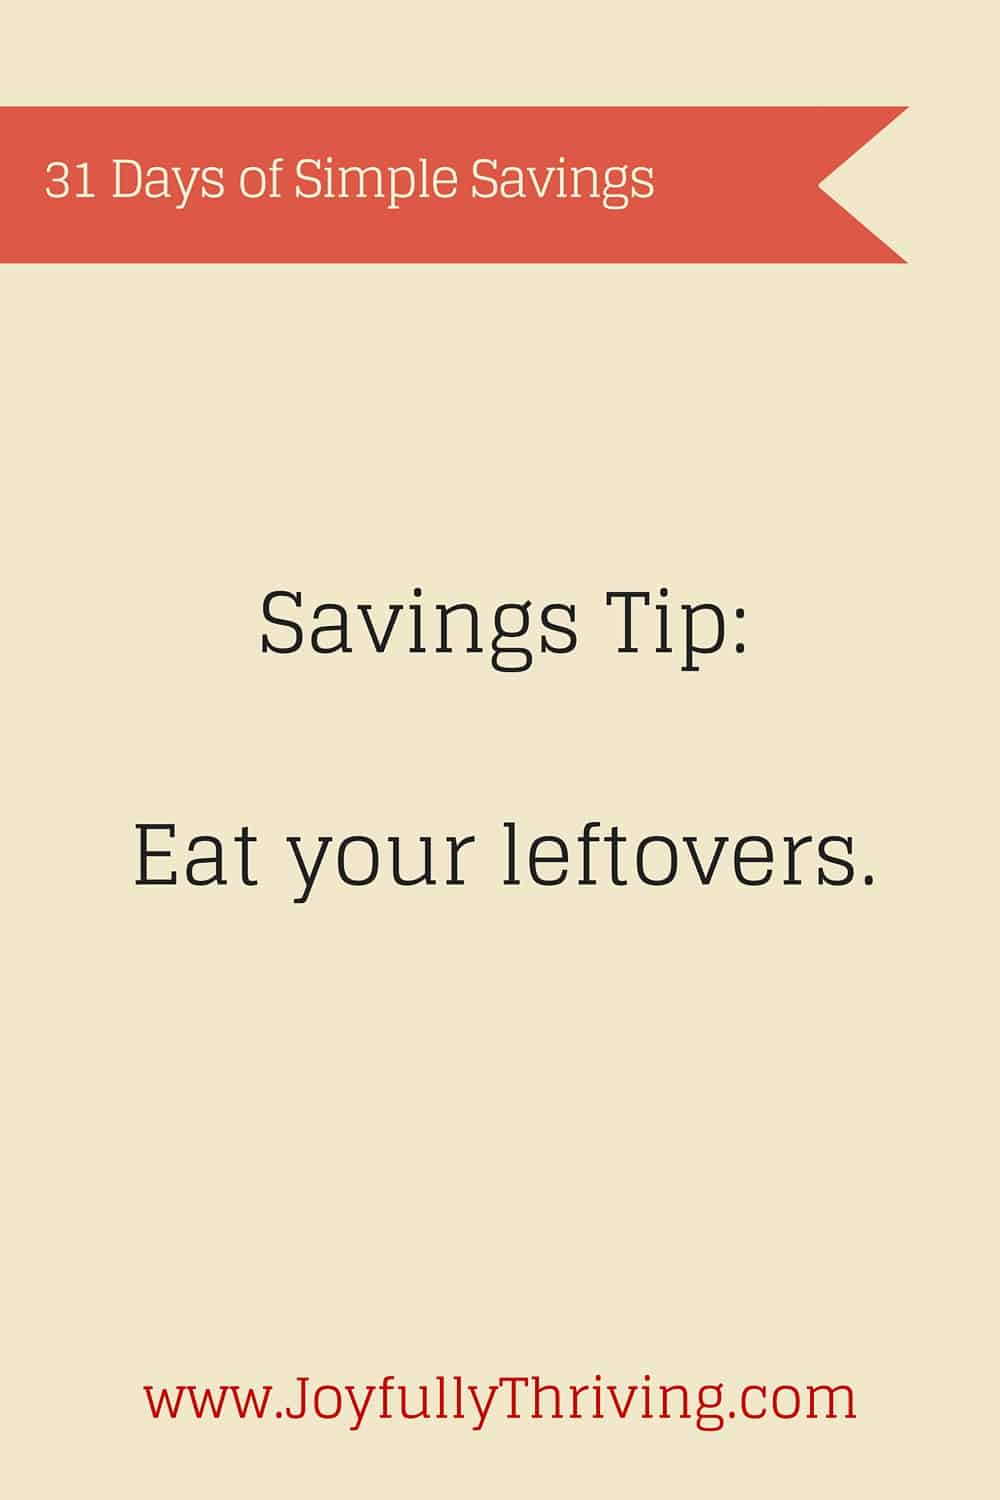 Simple Savings: Eat your leftovers.